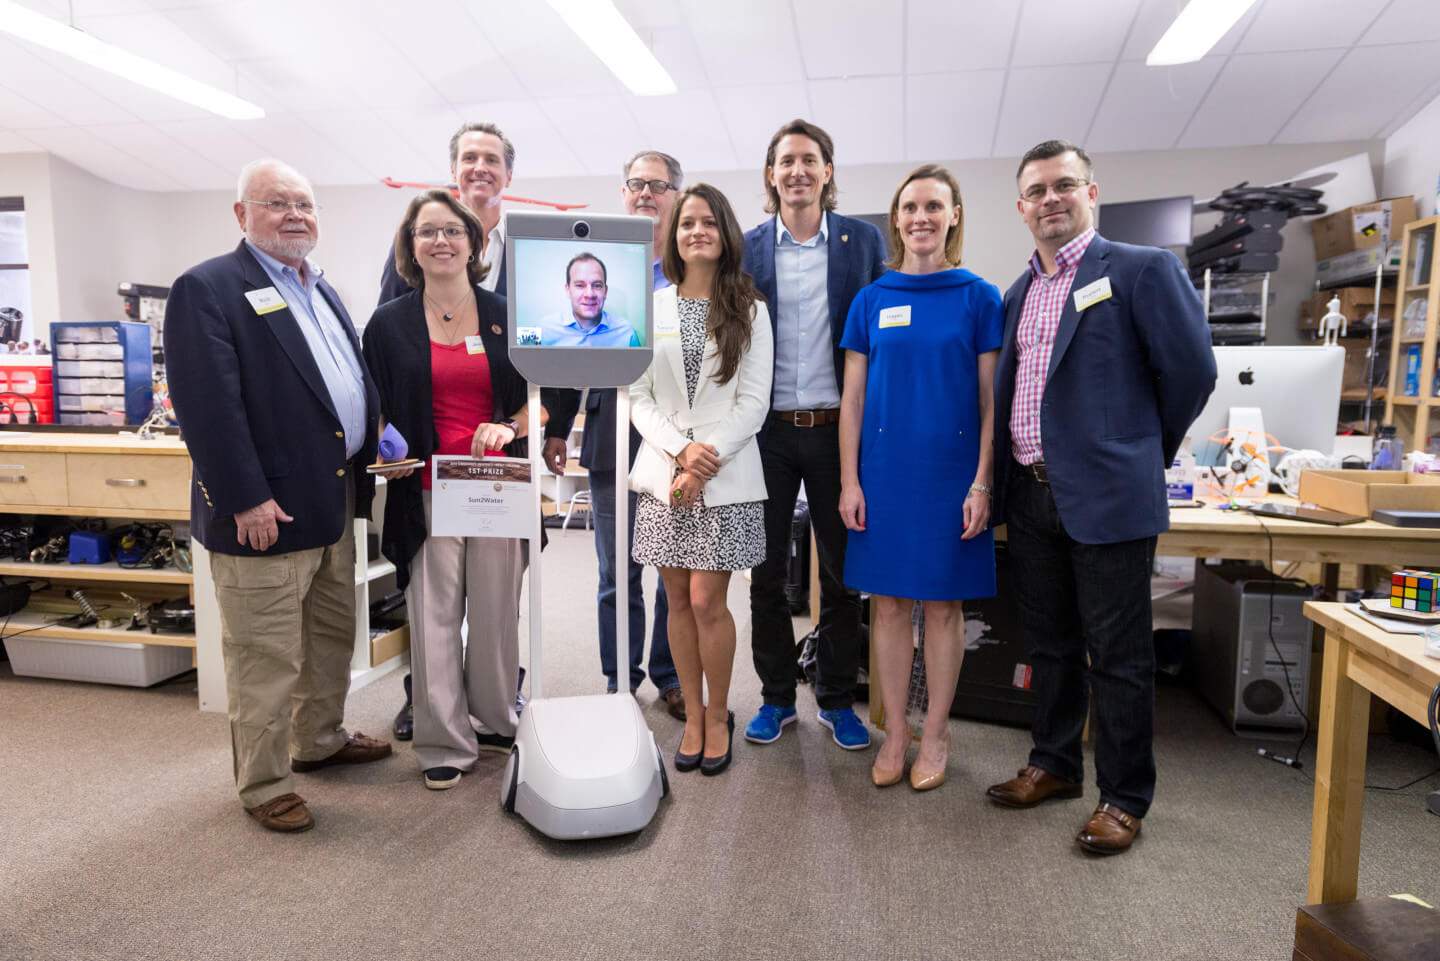 The 2015 Singularity University Impact Challenge winners.